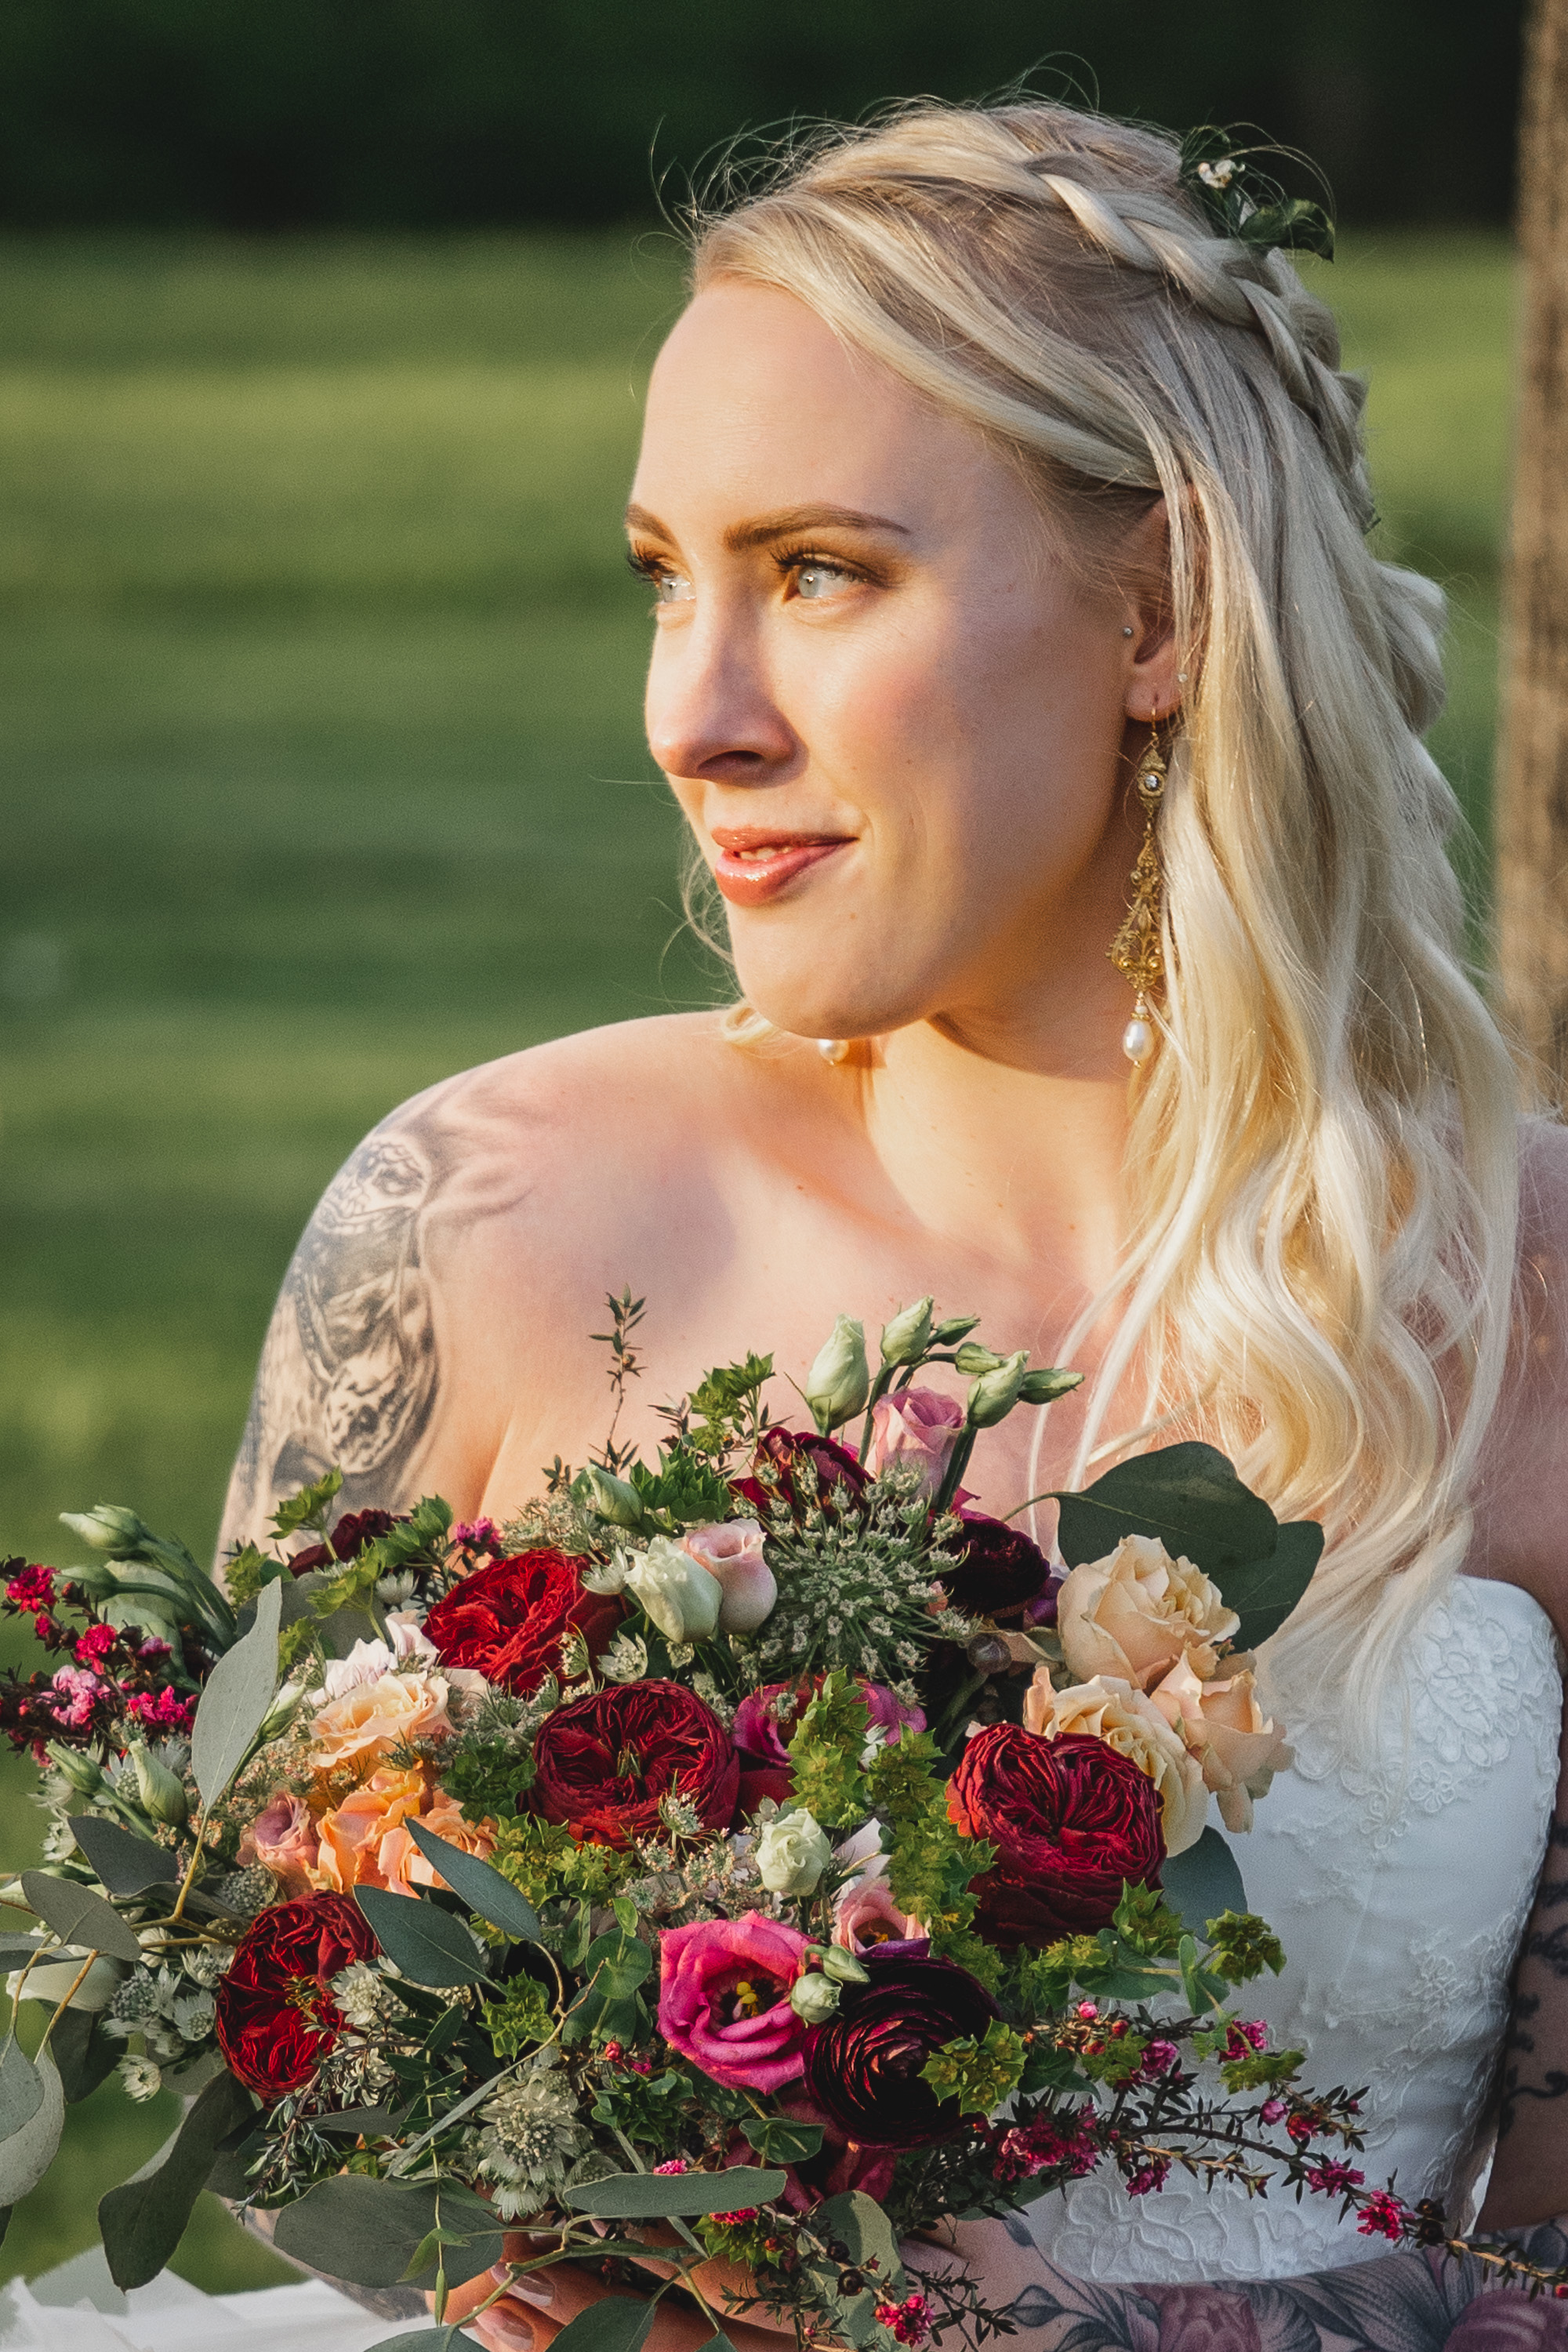 bride and burg bouquet.jpg